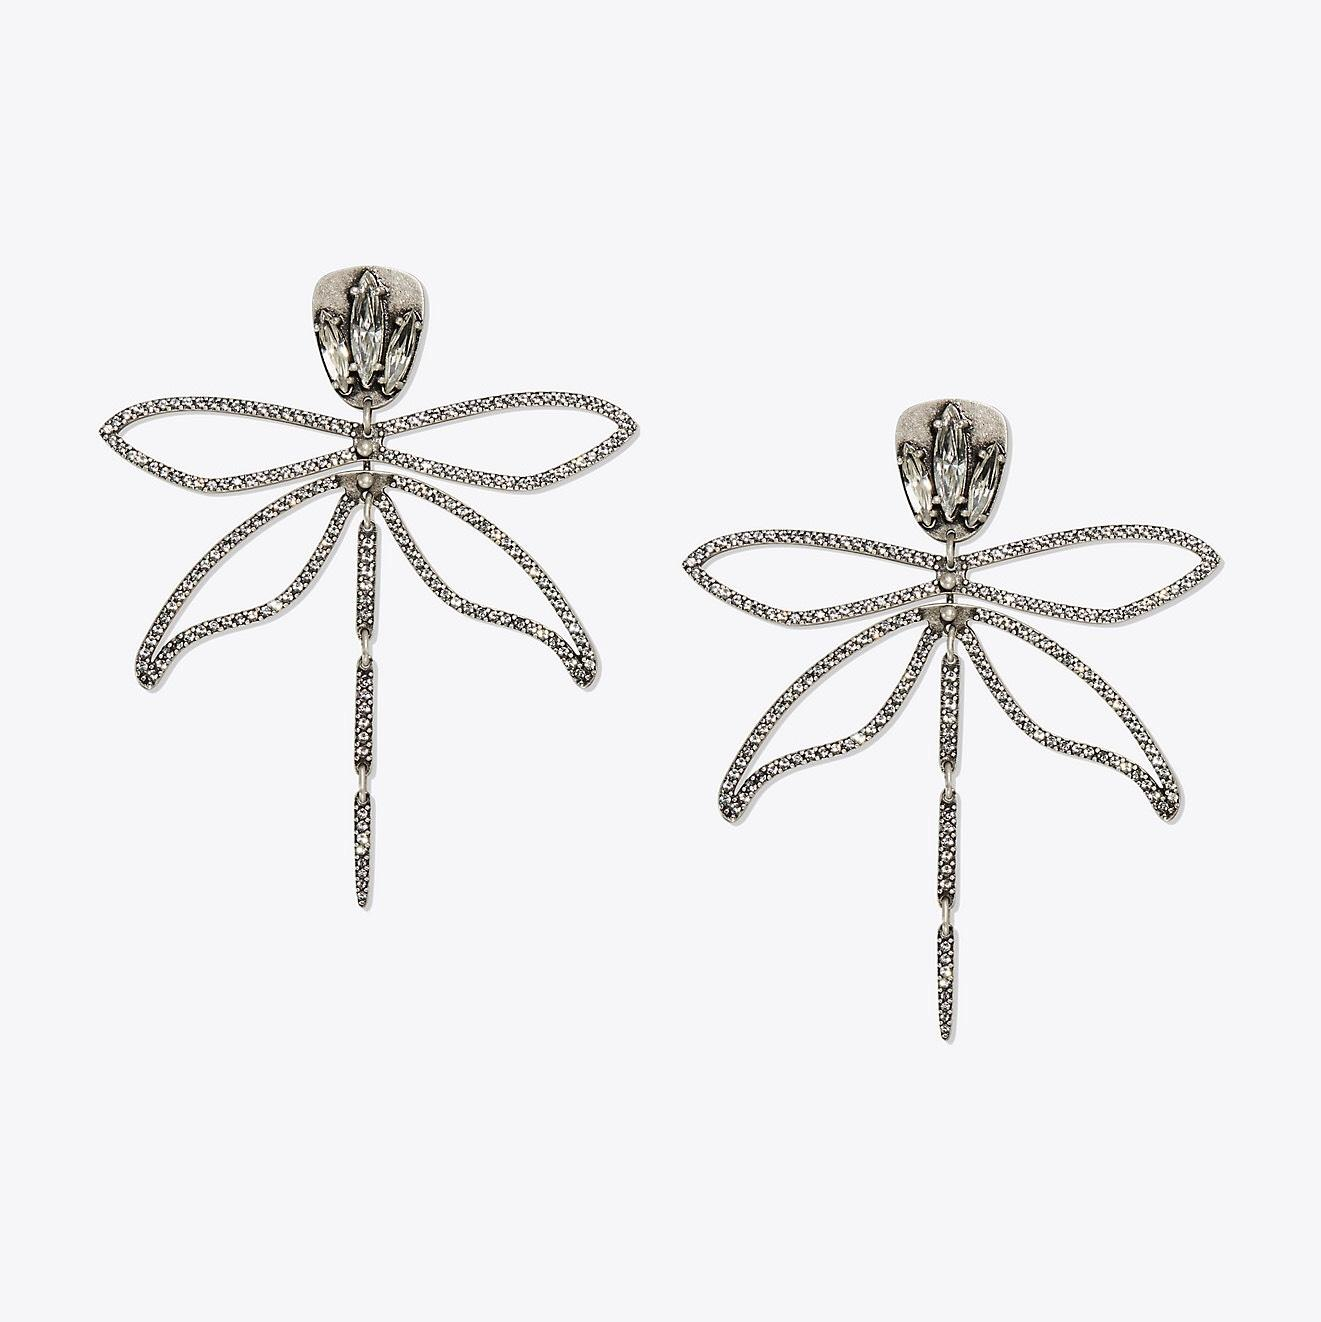 Tory Burch Articulated Dragonfly Earrings uN3Ys1